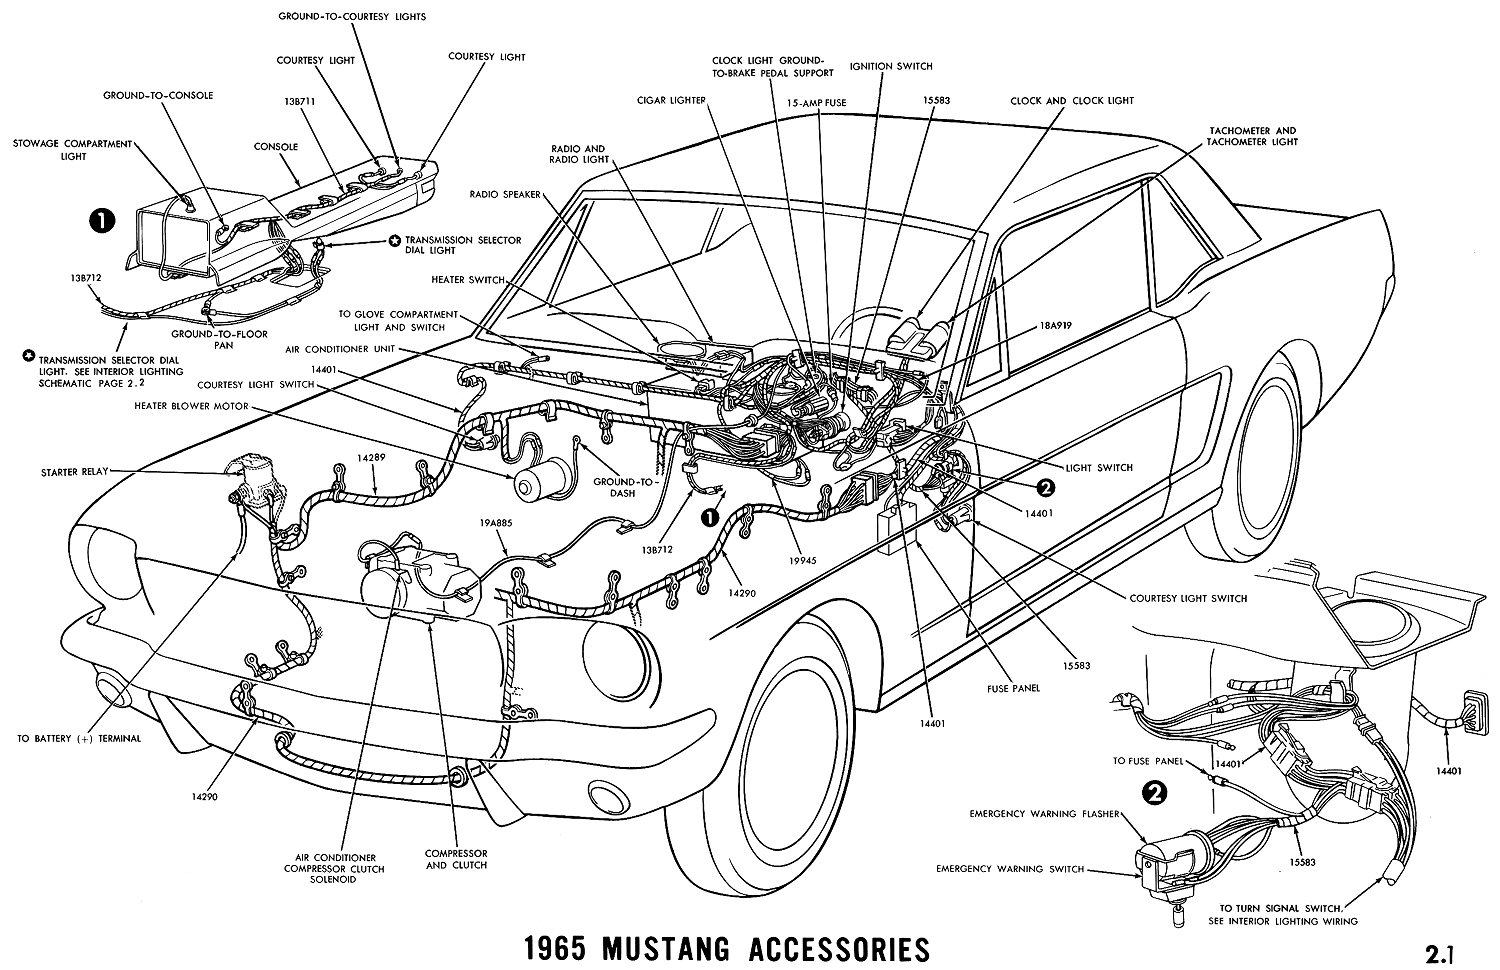 1965h 66 mustang fuse box diagram wiring diagram simonand 1971 mustang fuse box location at aneh.co